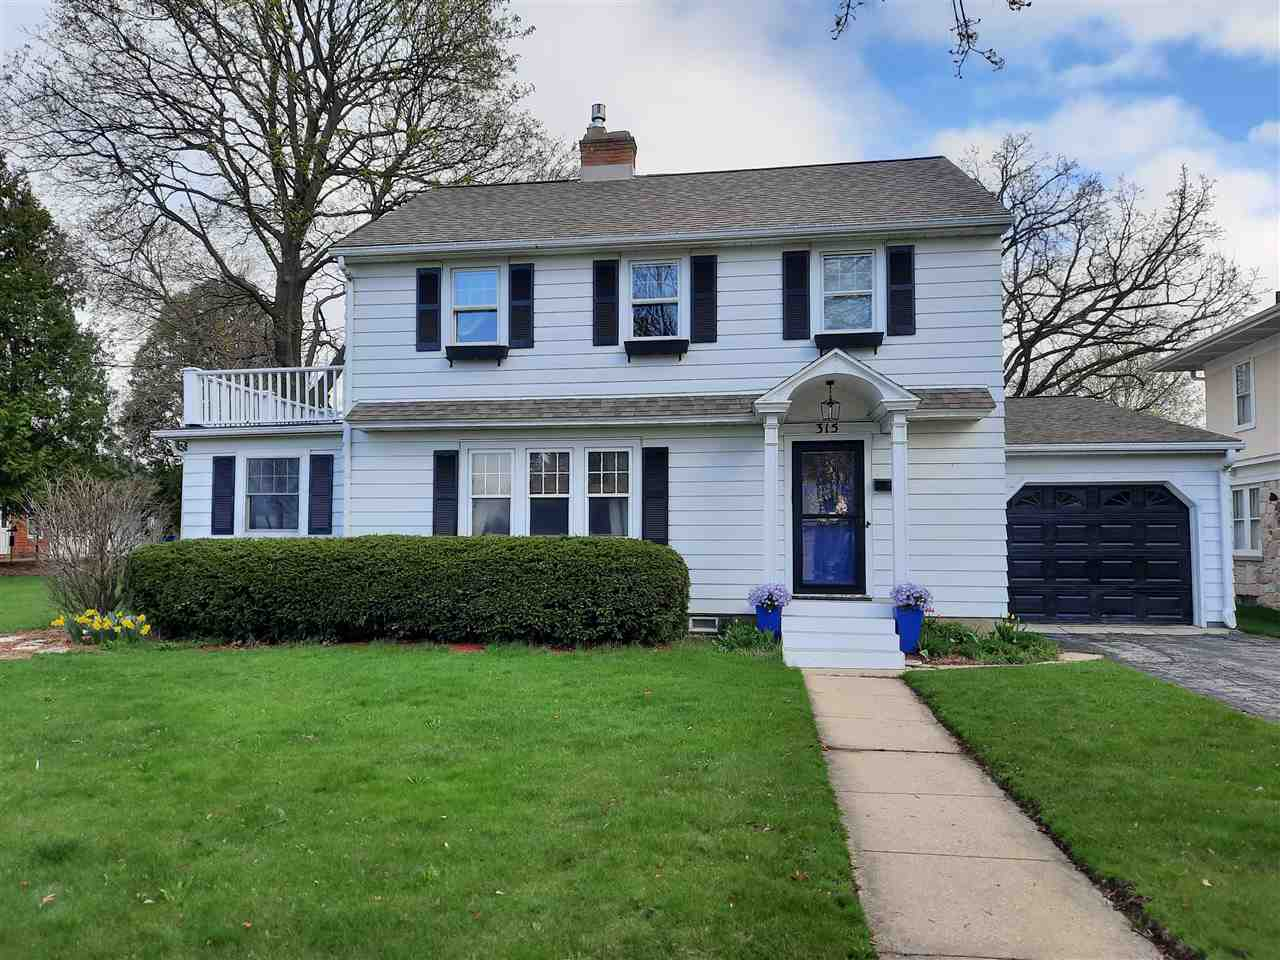 315 W Main St, Waunakee, Wisconsin 53597, 2 Bedrooms Bedrooms, ,2 BathroomsBathrooms,Single Family,For Sale,315 W Main St,2,1904011